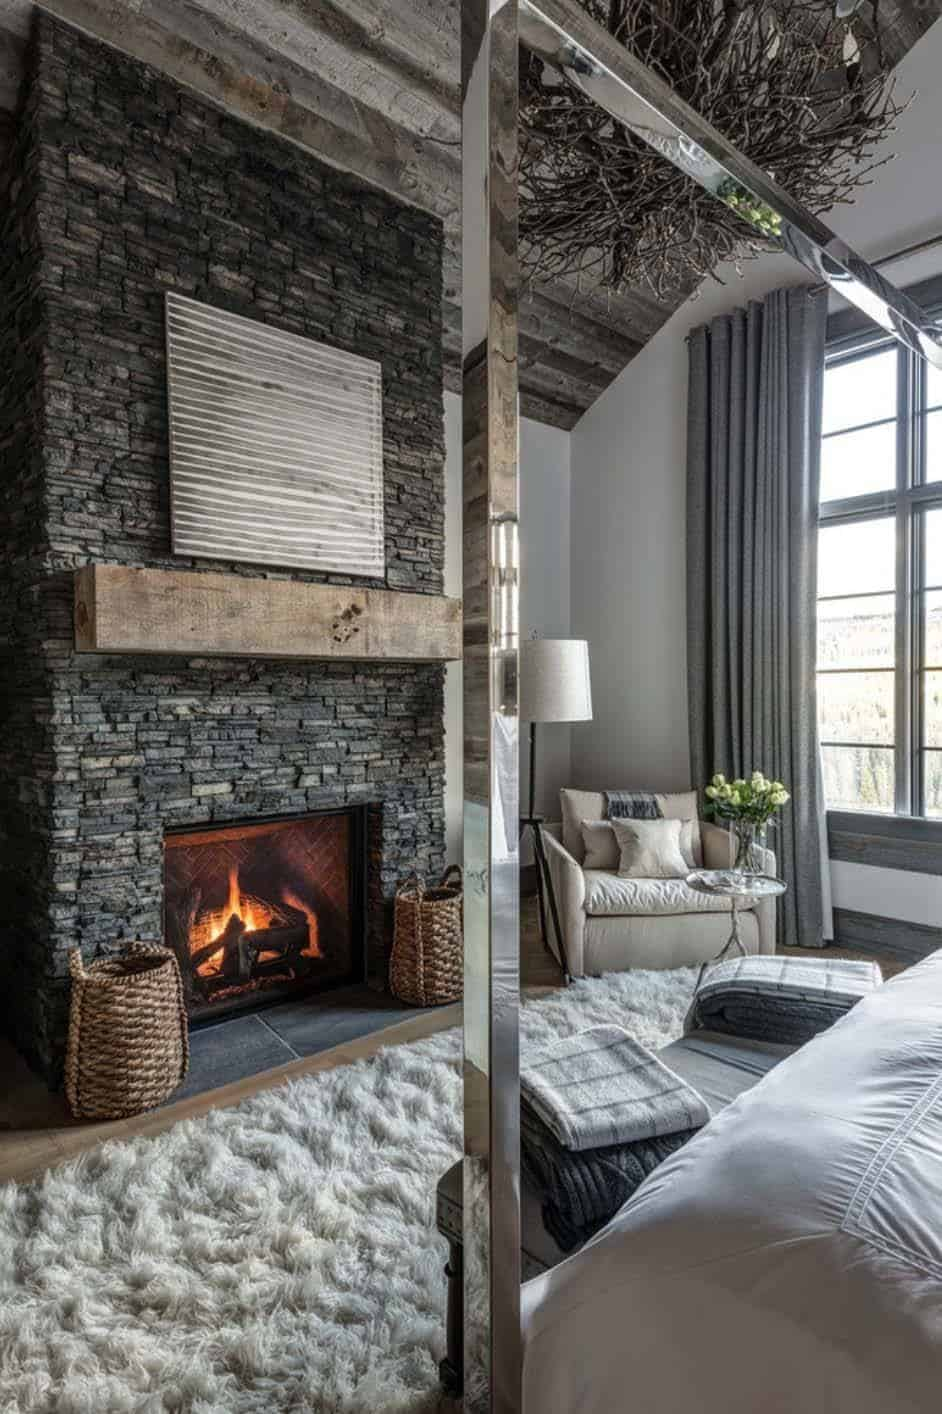 Rustic Mountain Chalet-Locati Architects-10-1 Kindesign